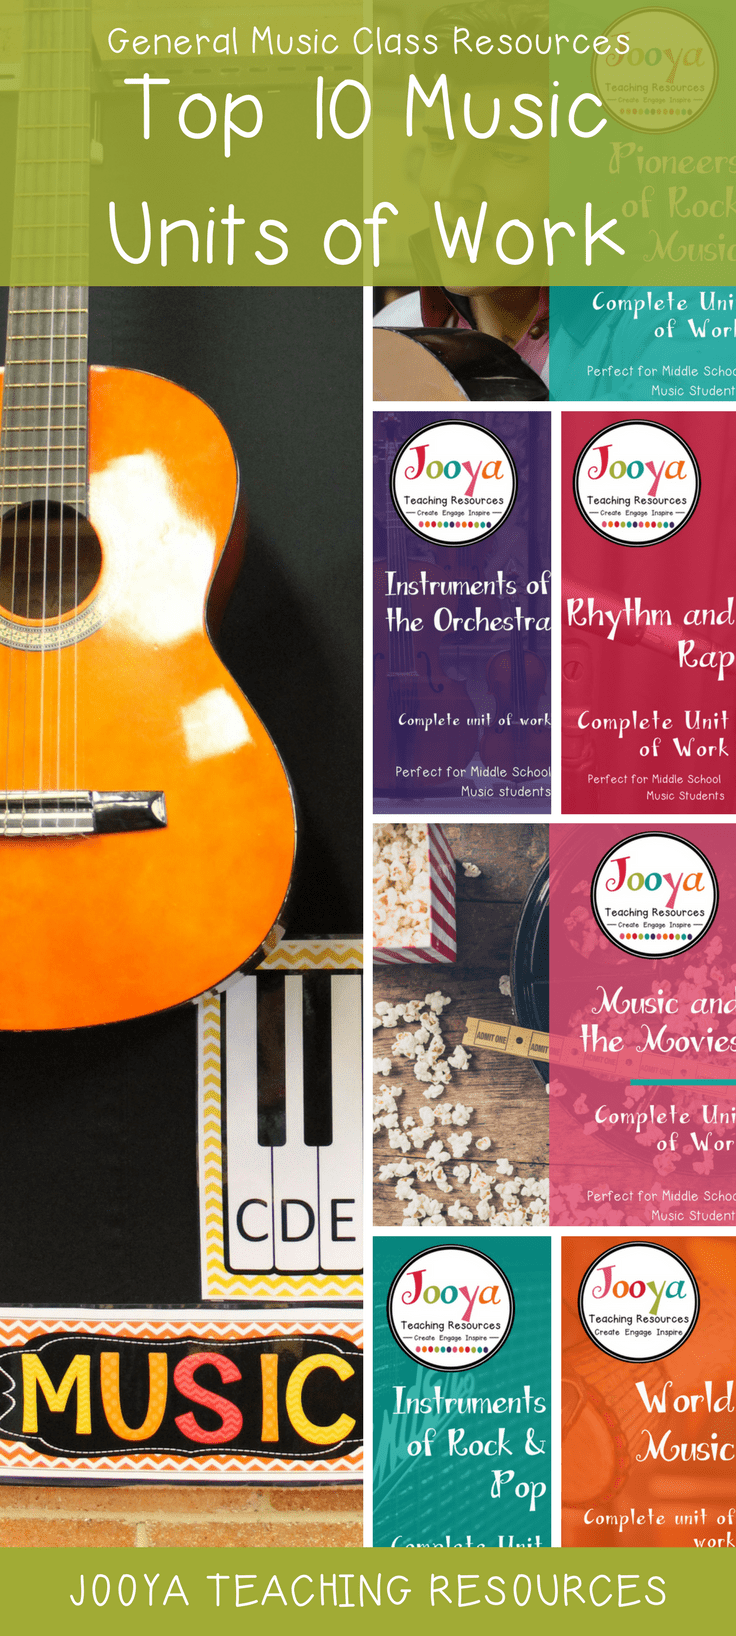 Top 10 Music Units of Work for the General Music classroom from Jooya Teaching Resources.